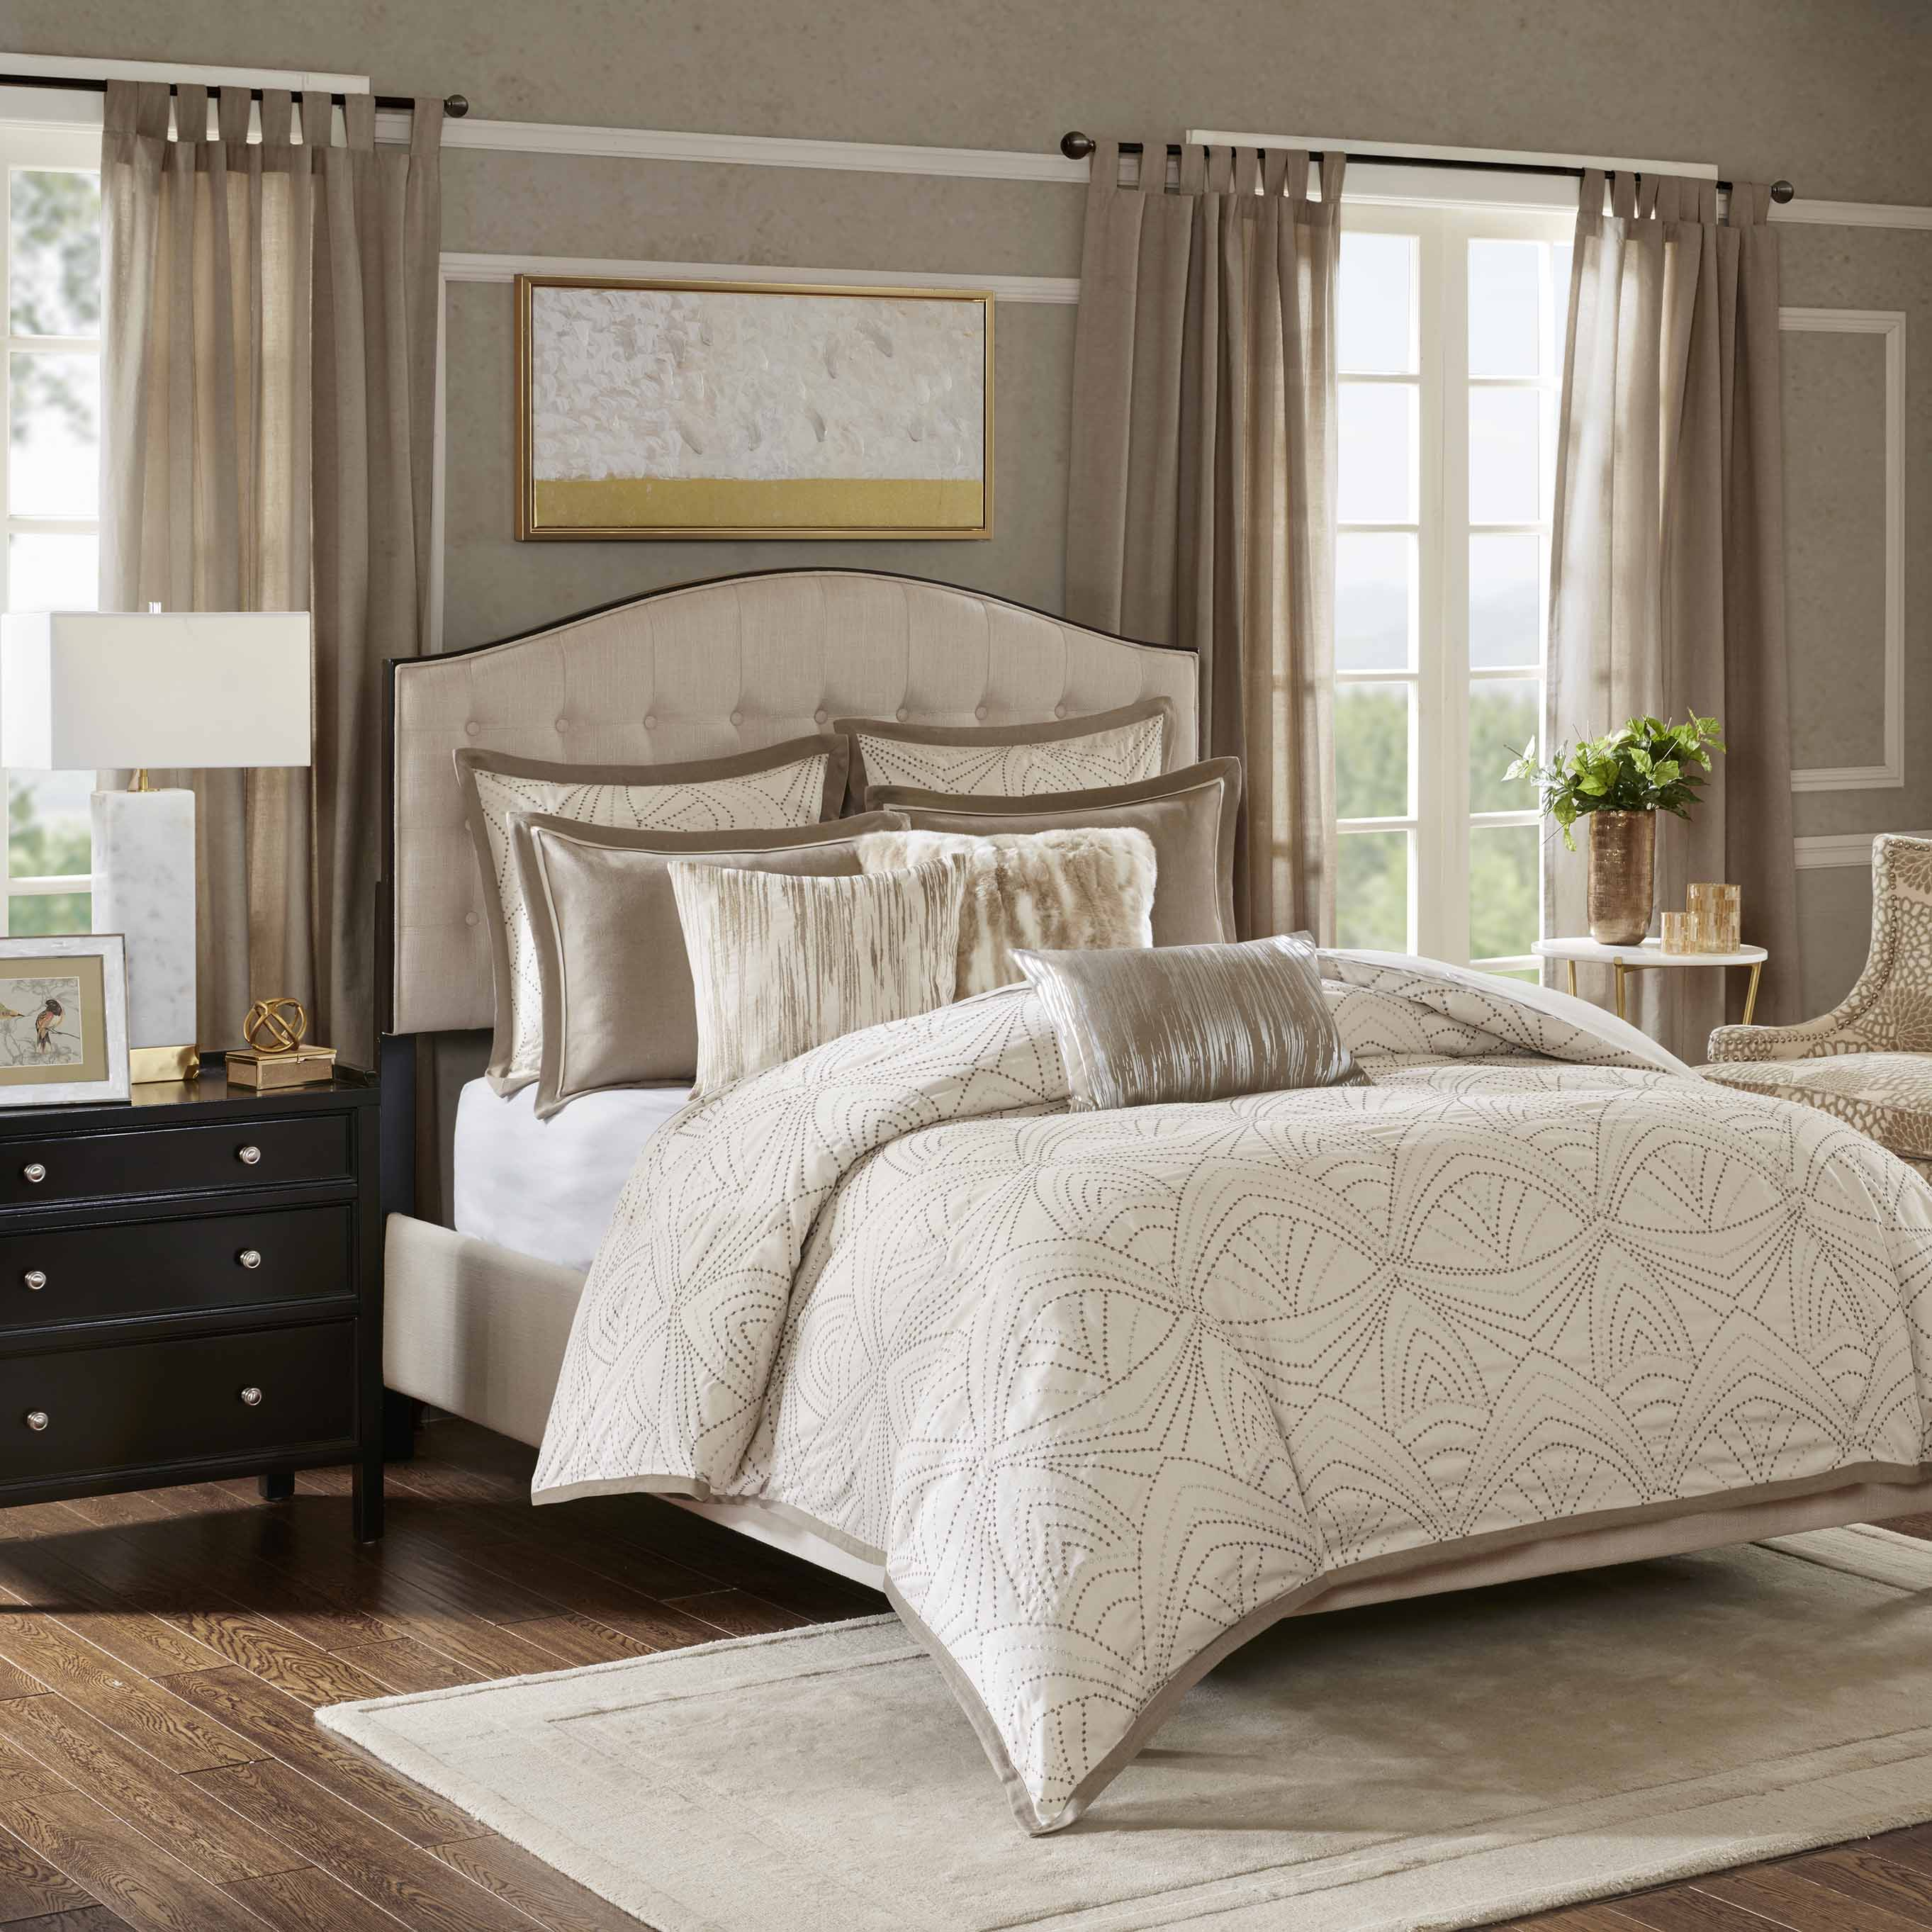 Glamorous Comforter Set Madison Park Signature Olliix